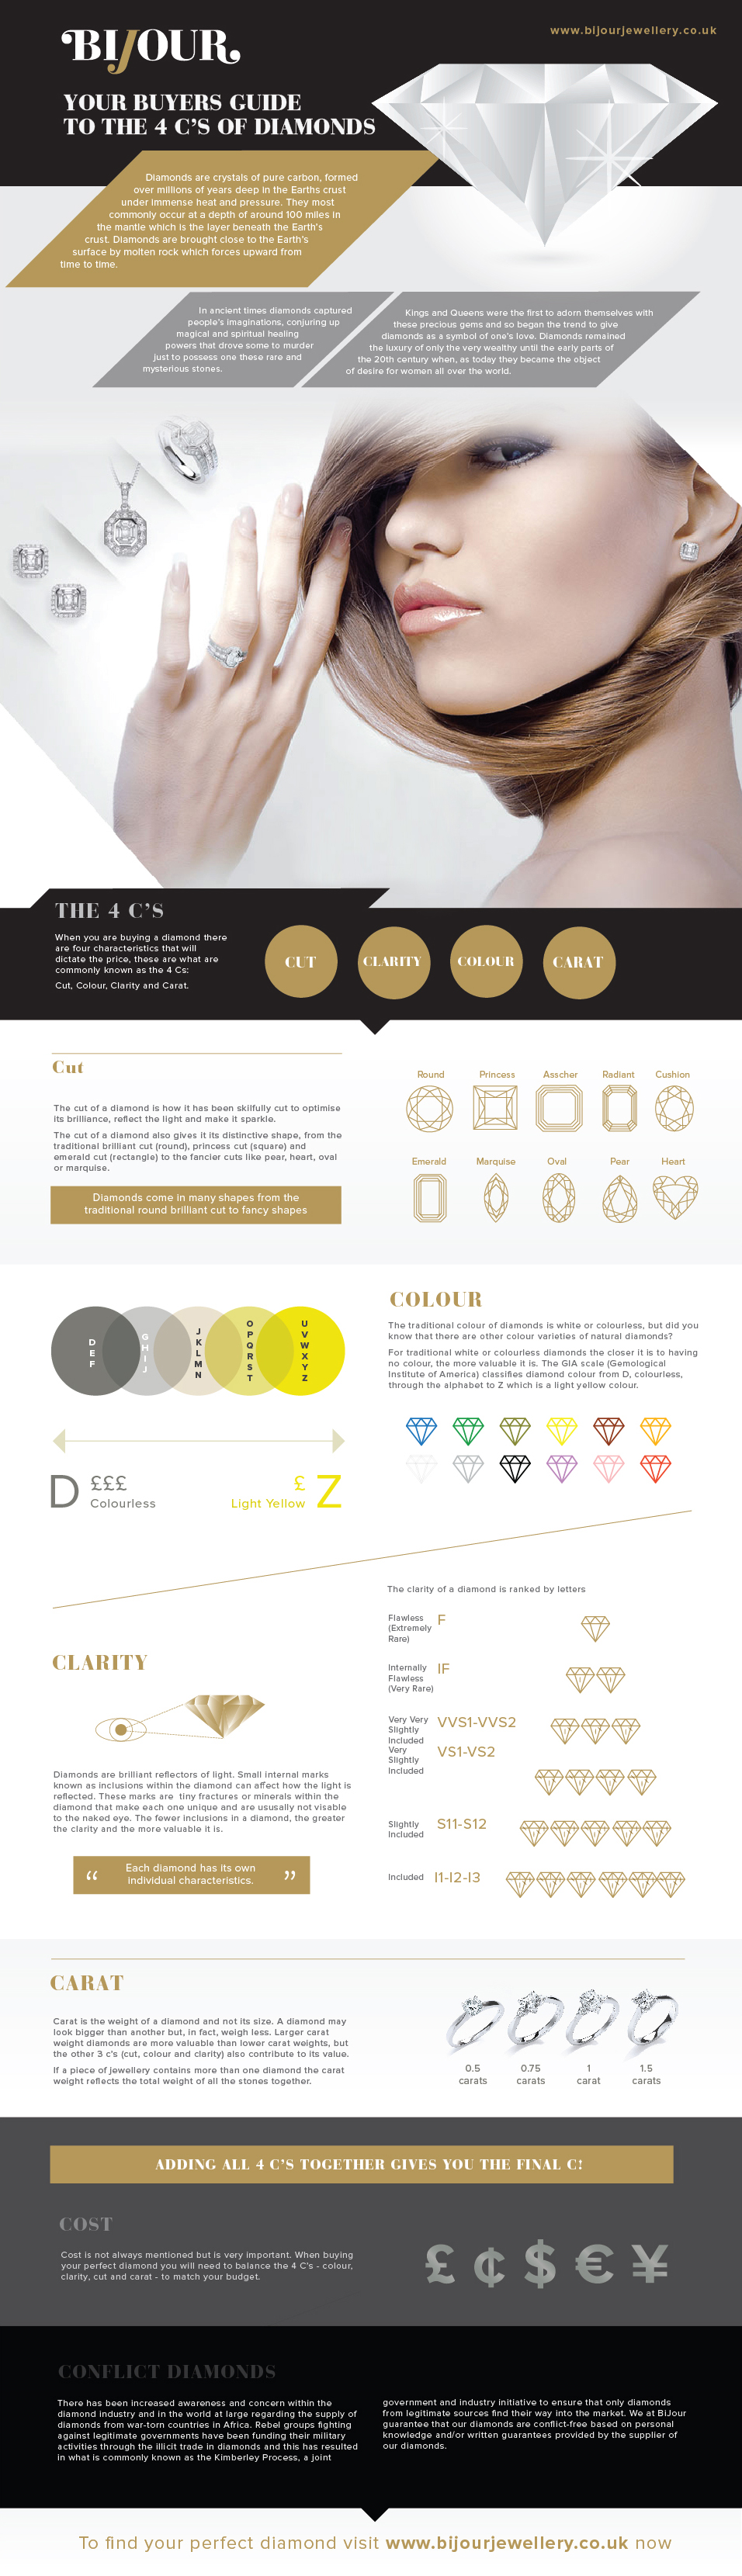 Your Bayers Guide to the 4 C's of Diamonds